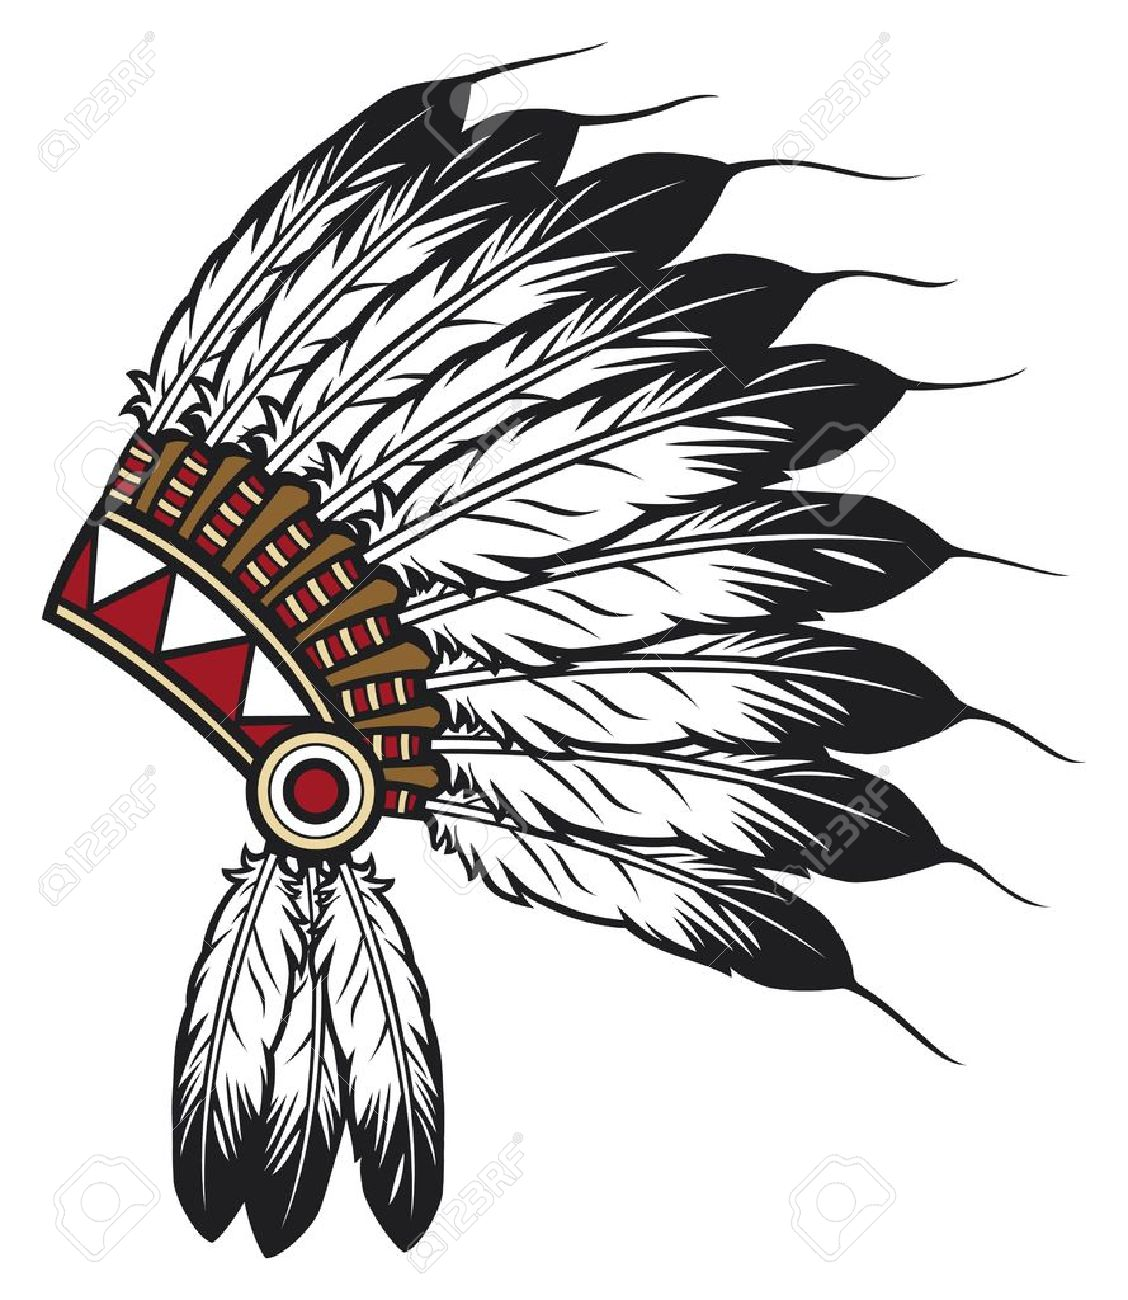 Native American Indian Chief Headdress Indian Chief Mascot Indian Tribal Headdress Indian Headdress